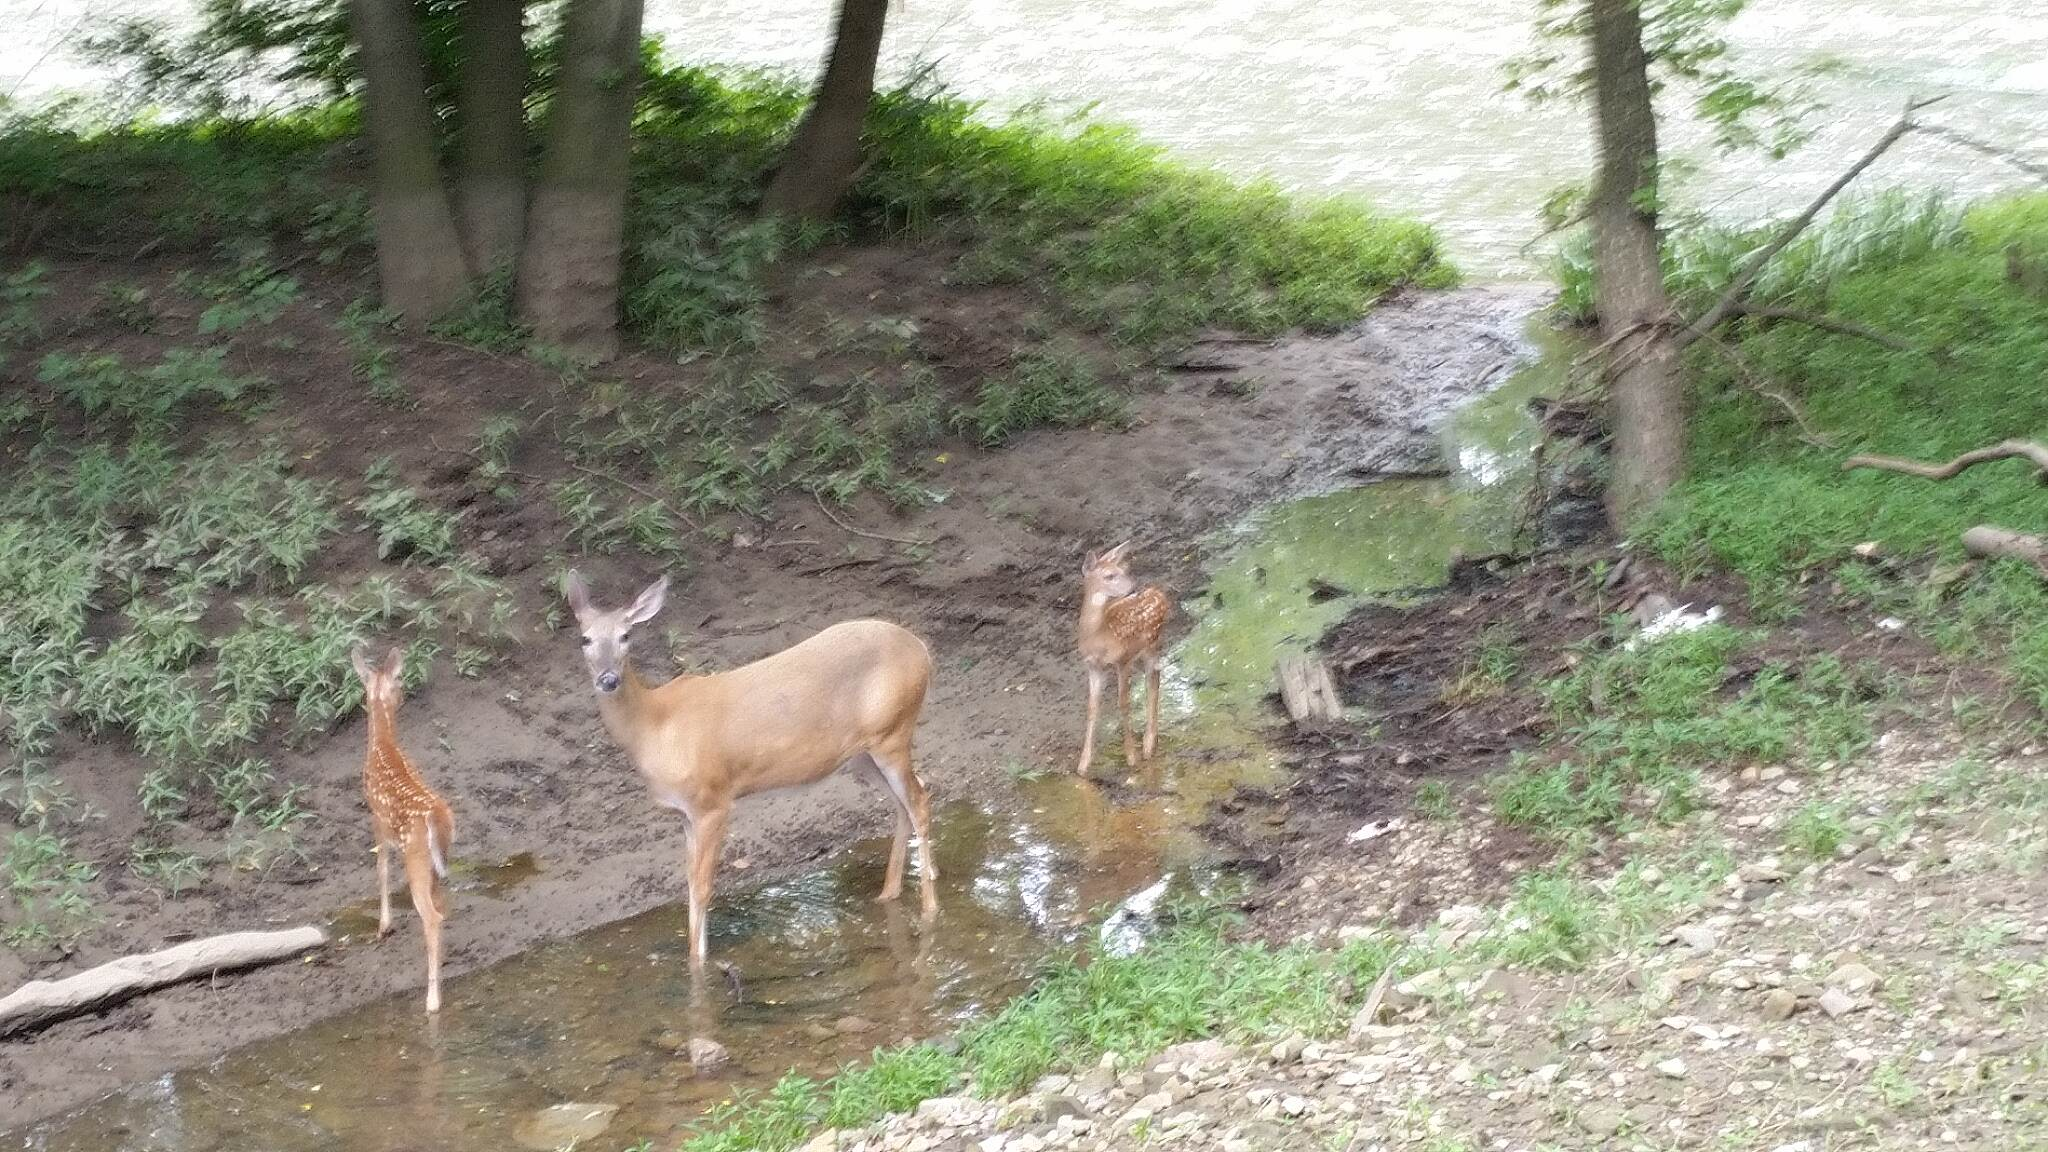 Olentangy Trail Olentangy Trail deer